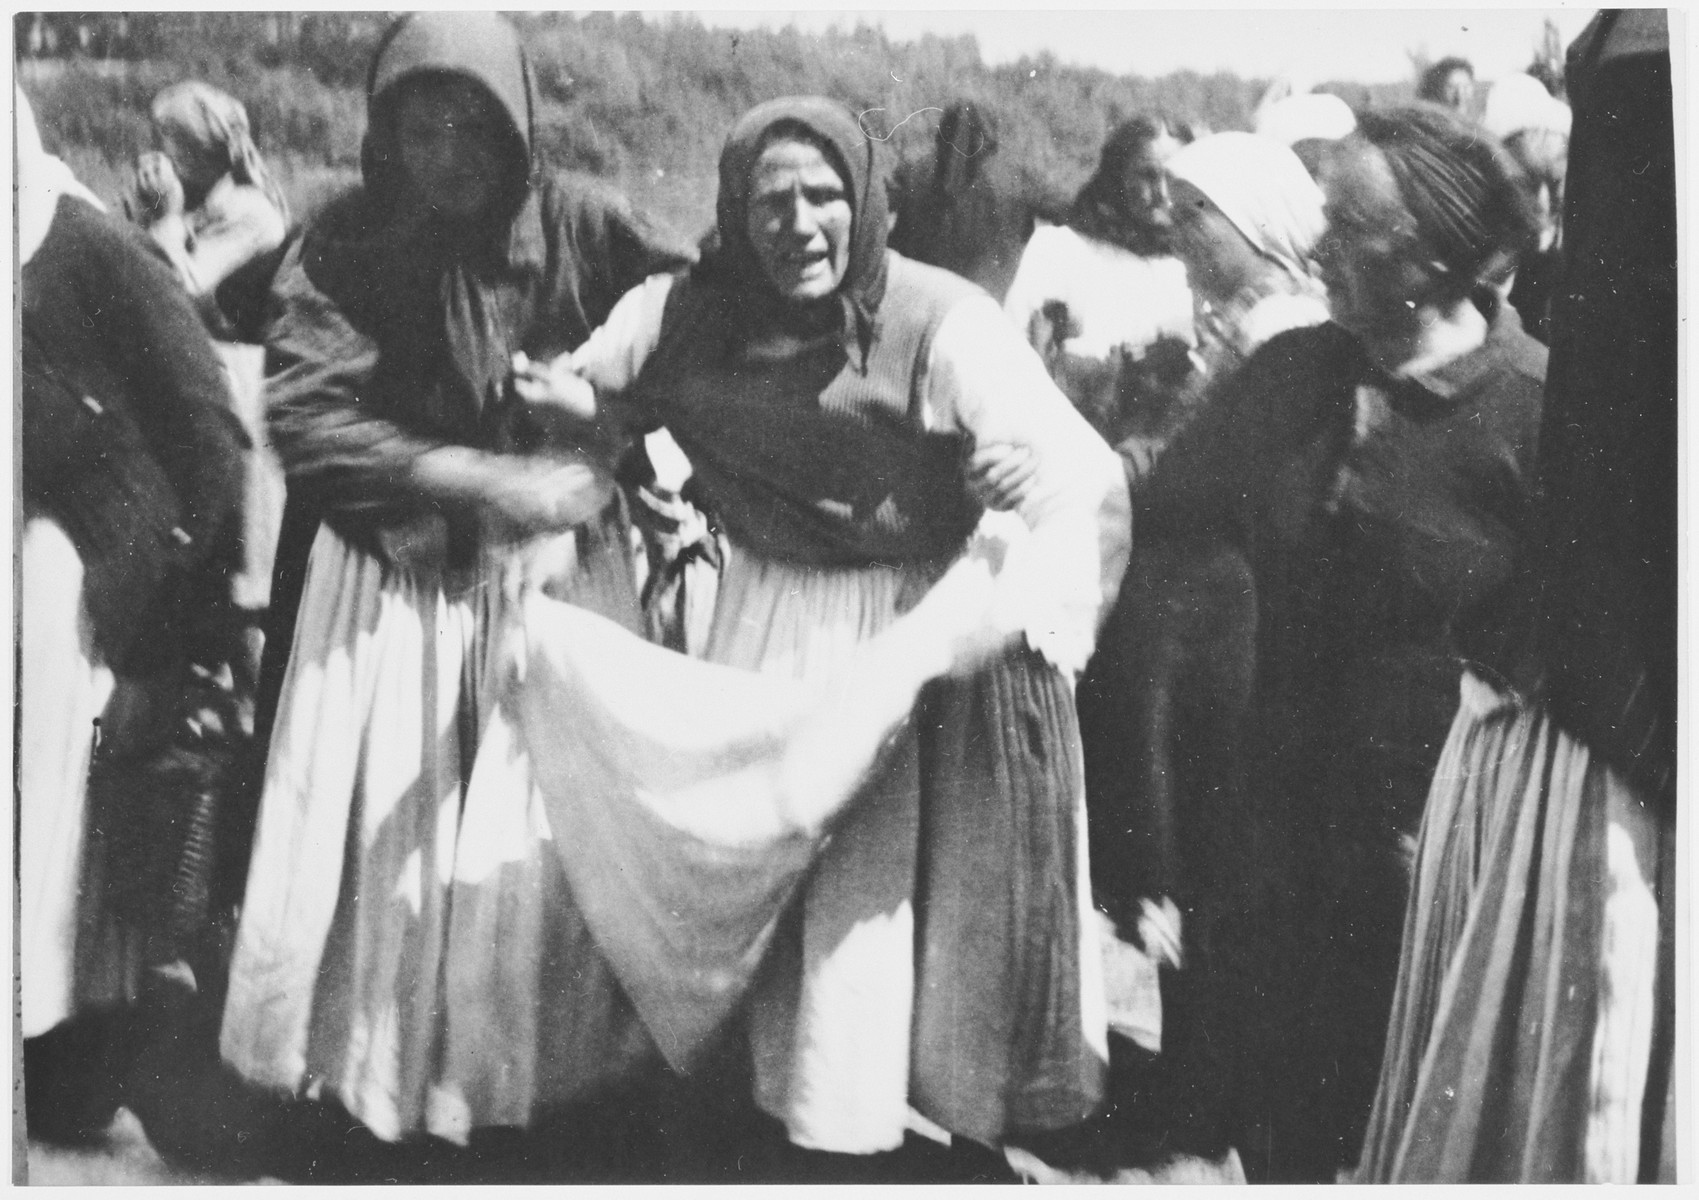 Grief stricken family members of prisoners killed at the Sisak concentration camp, gather along the banks of the Sava River where many bodies of camp victims were found.